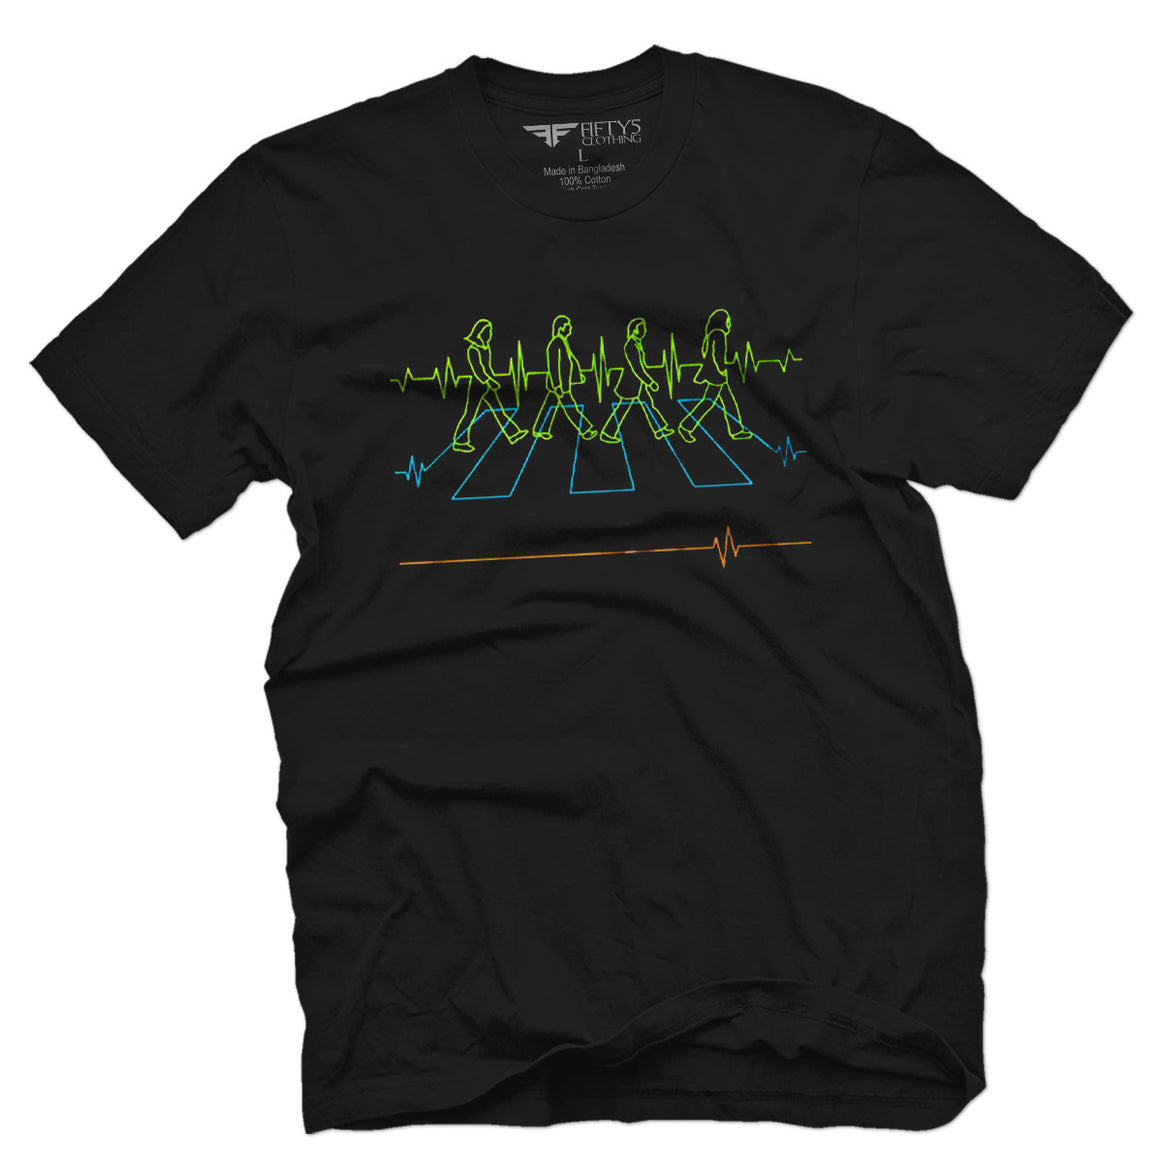 Fifty5 Clothing Abbey Road Electrocardiography Men's T Shirt